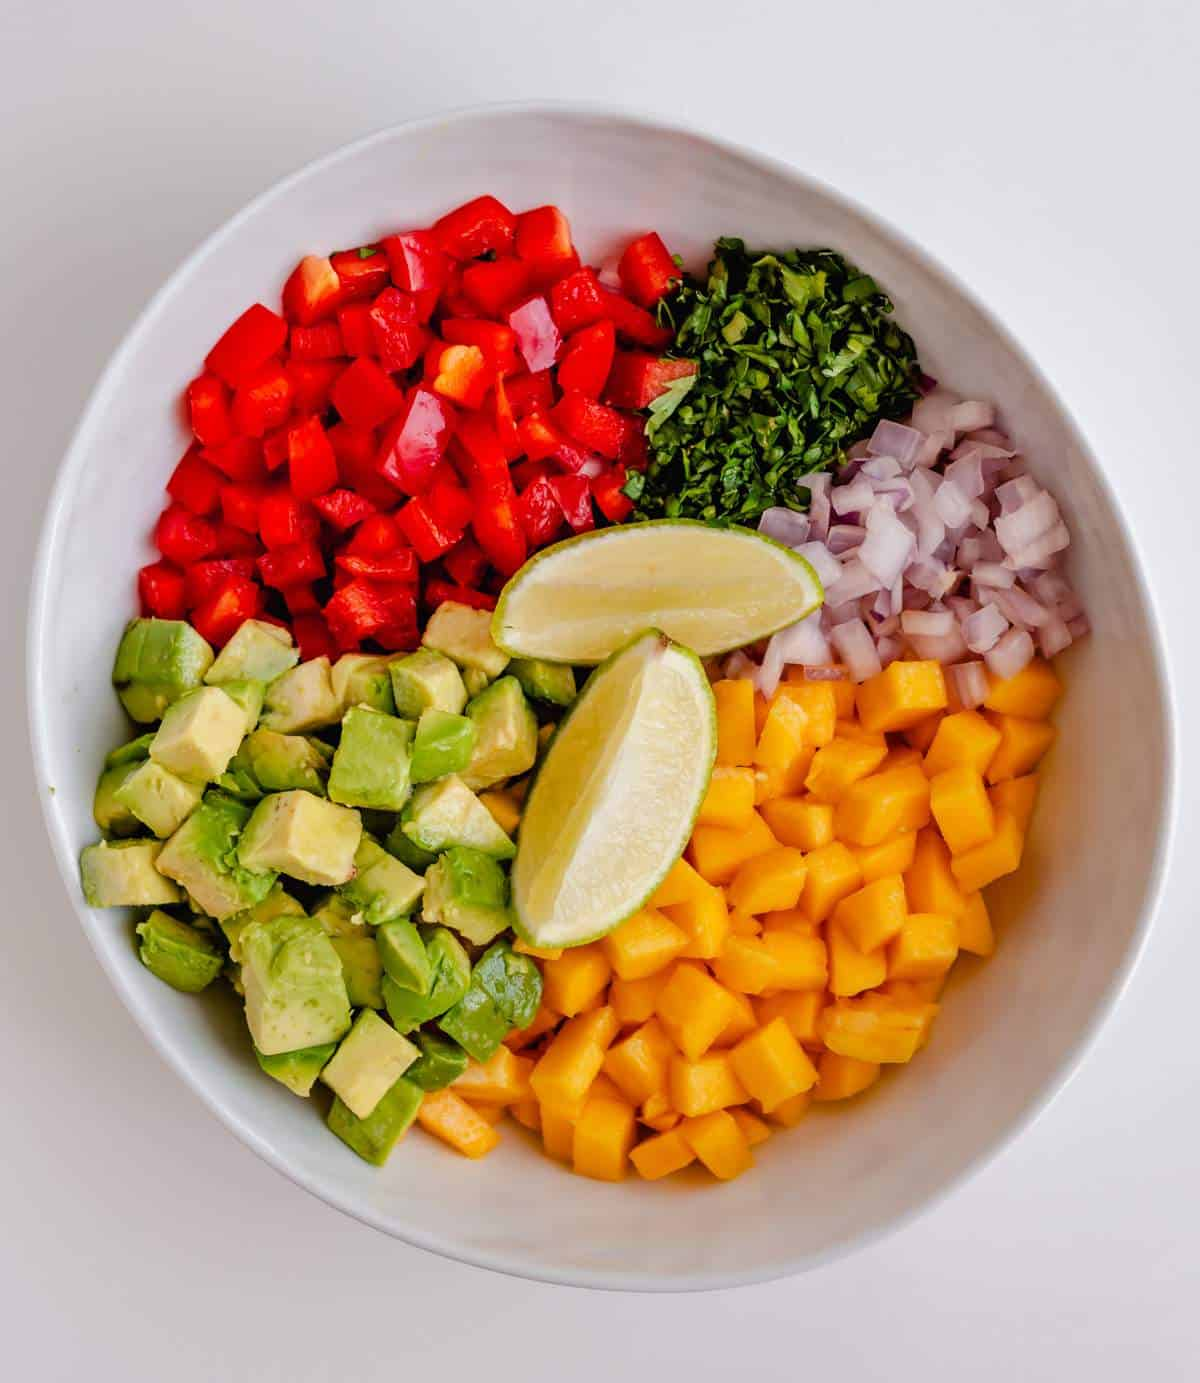 The ingredients in of a bowl of mango and avocado salsa, unmixed.